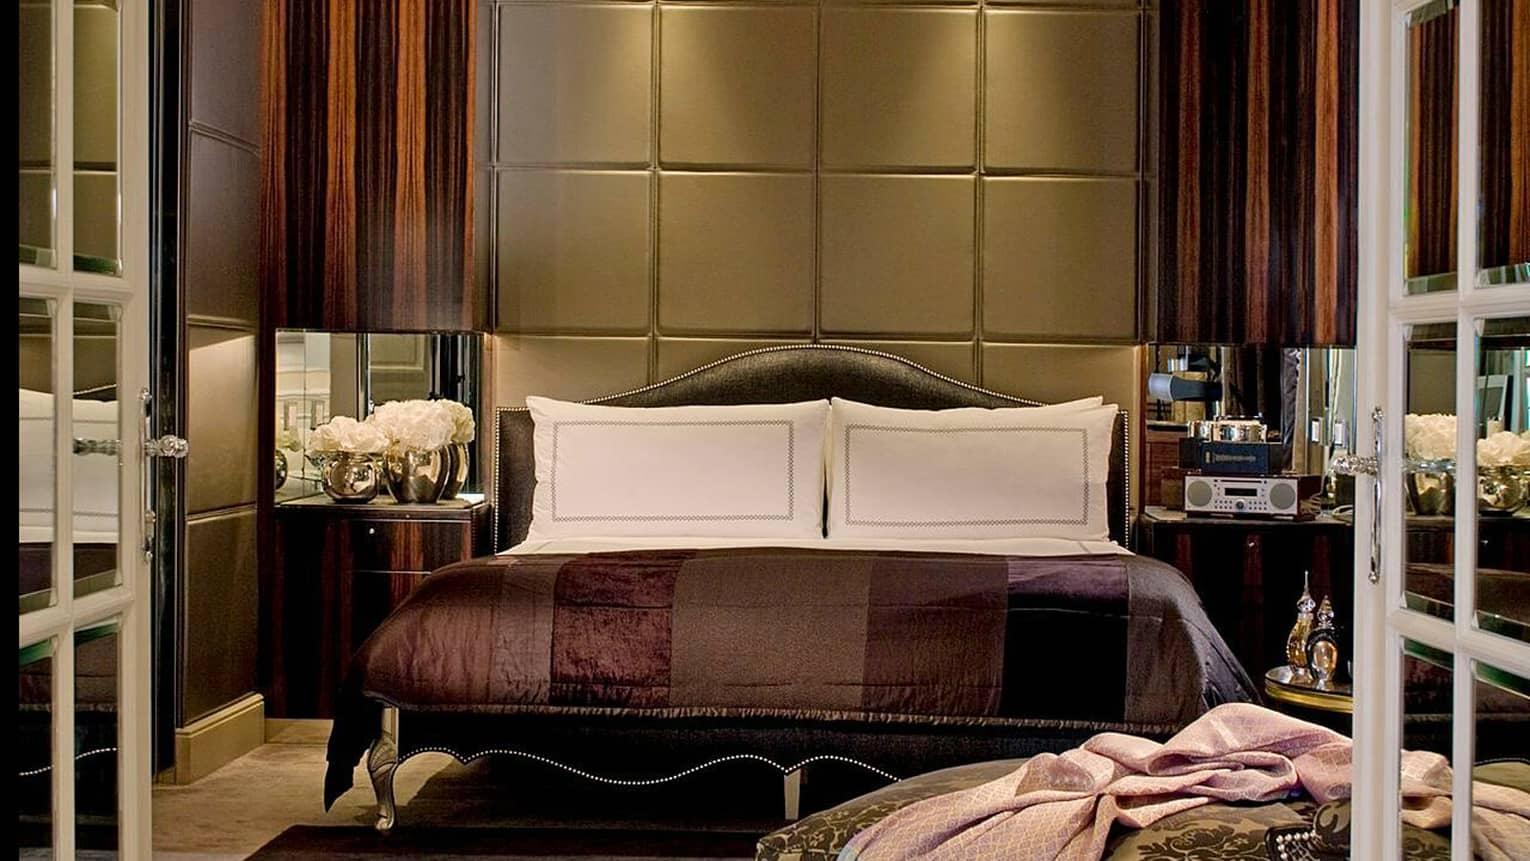 Dimly-lit hotel room, bed with deep brown and purple satin bedspread, tall fabric headboard and wood panel walls